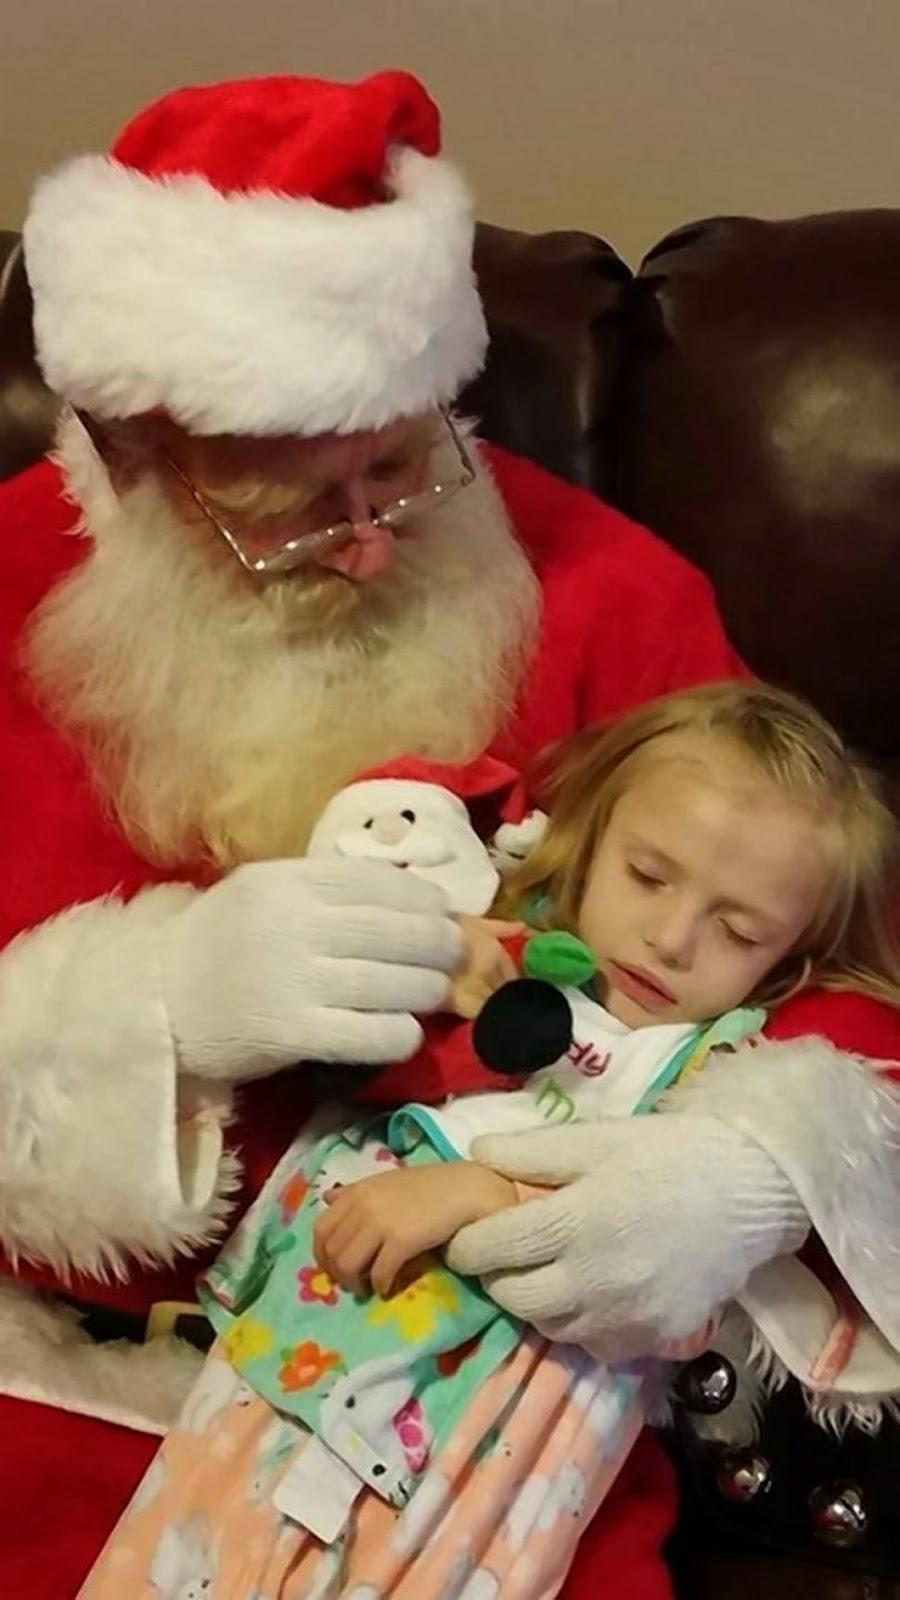 http://www.nydailynews.com/life-style/health/family-asks-christmas-cards-dying-daughter-article-1.2034893